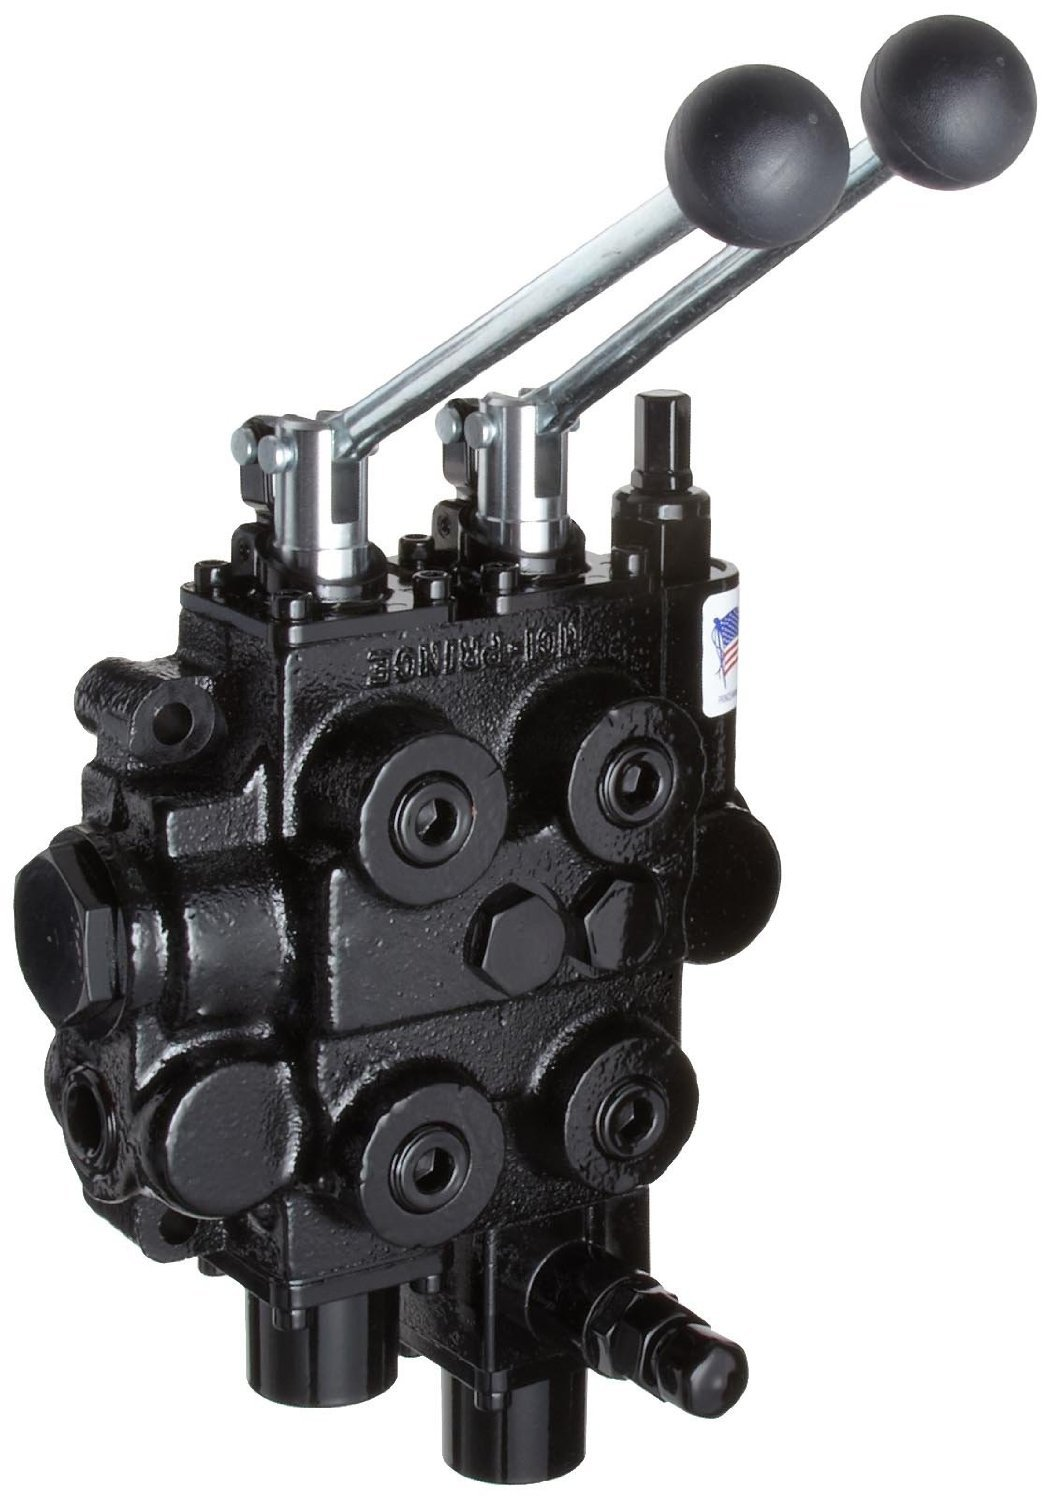 Prince RD522CCAA5A4B6 Directional Control Valve, Monoblock, Cast Iron, 2 Spool, 4 Ways, 3 Positions, Tandem, Spring Center, Joystick Handle, 3000 psi, 25 gpm, In/Out: 3/4'' NPT Female, Work 1/2'' NPT Female by Prince Manufacturing (Image #2)